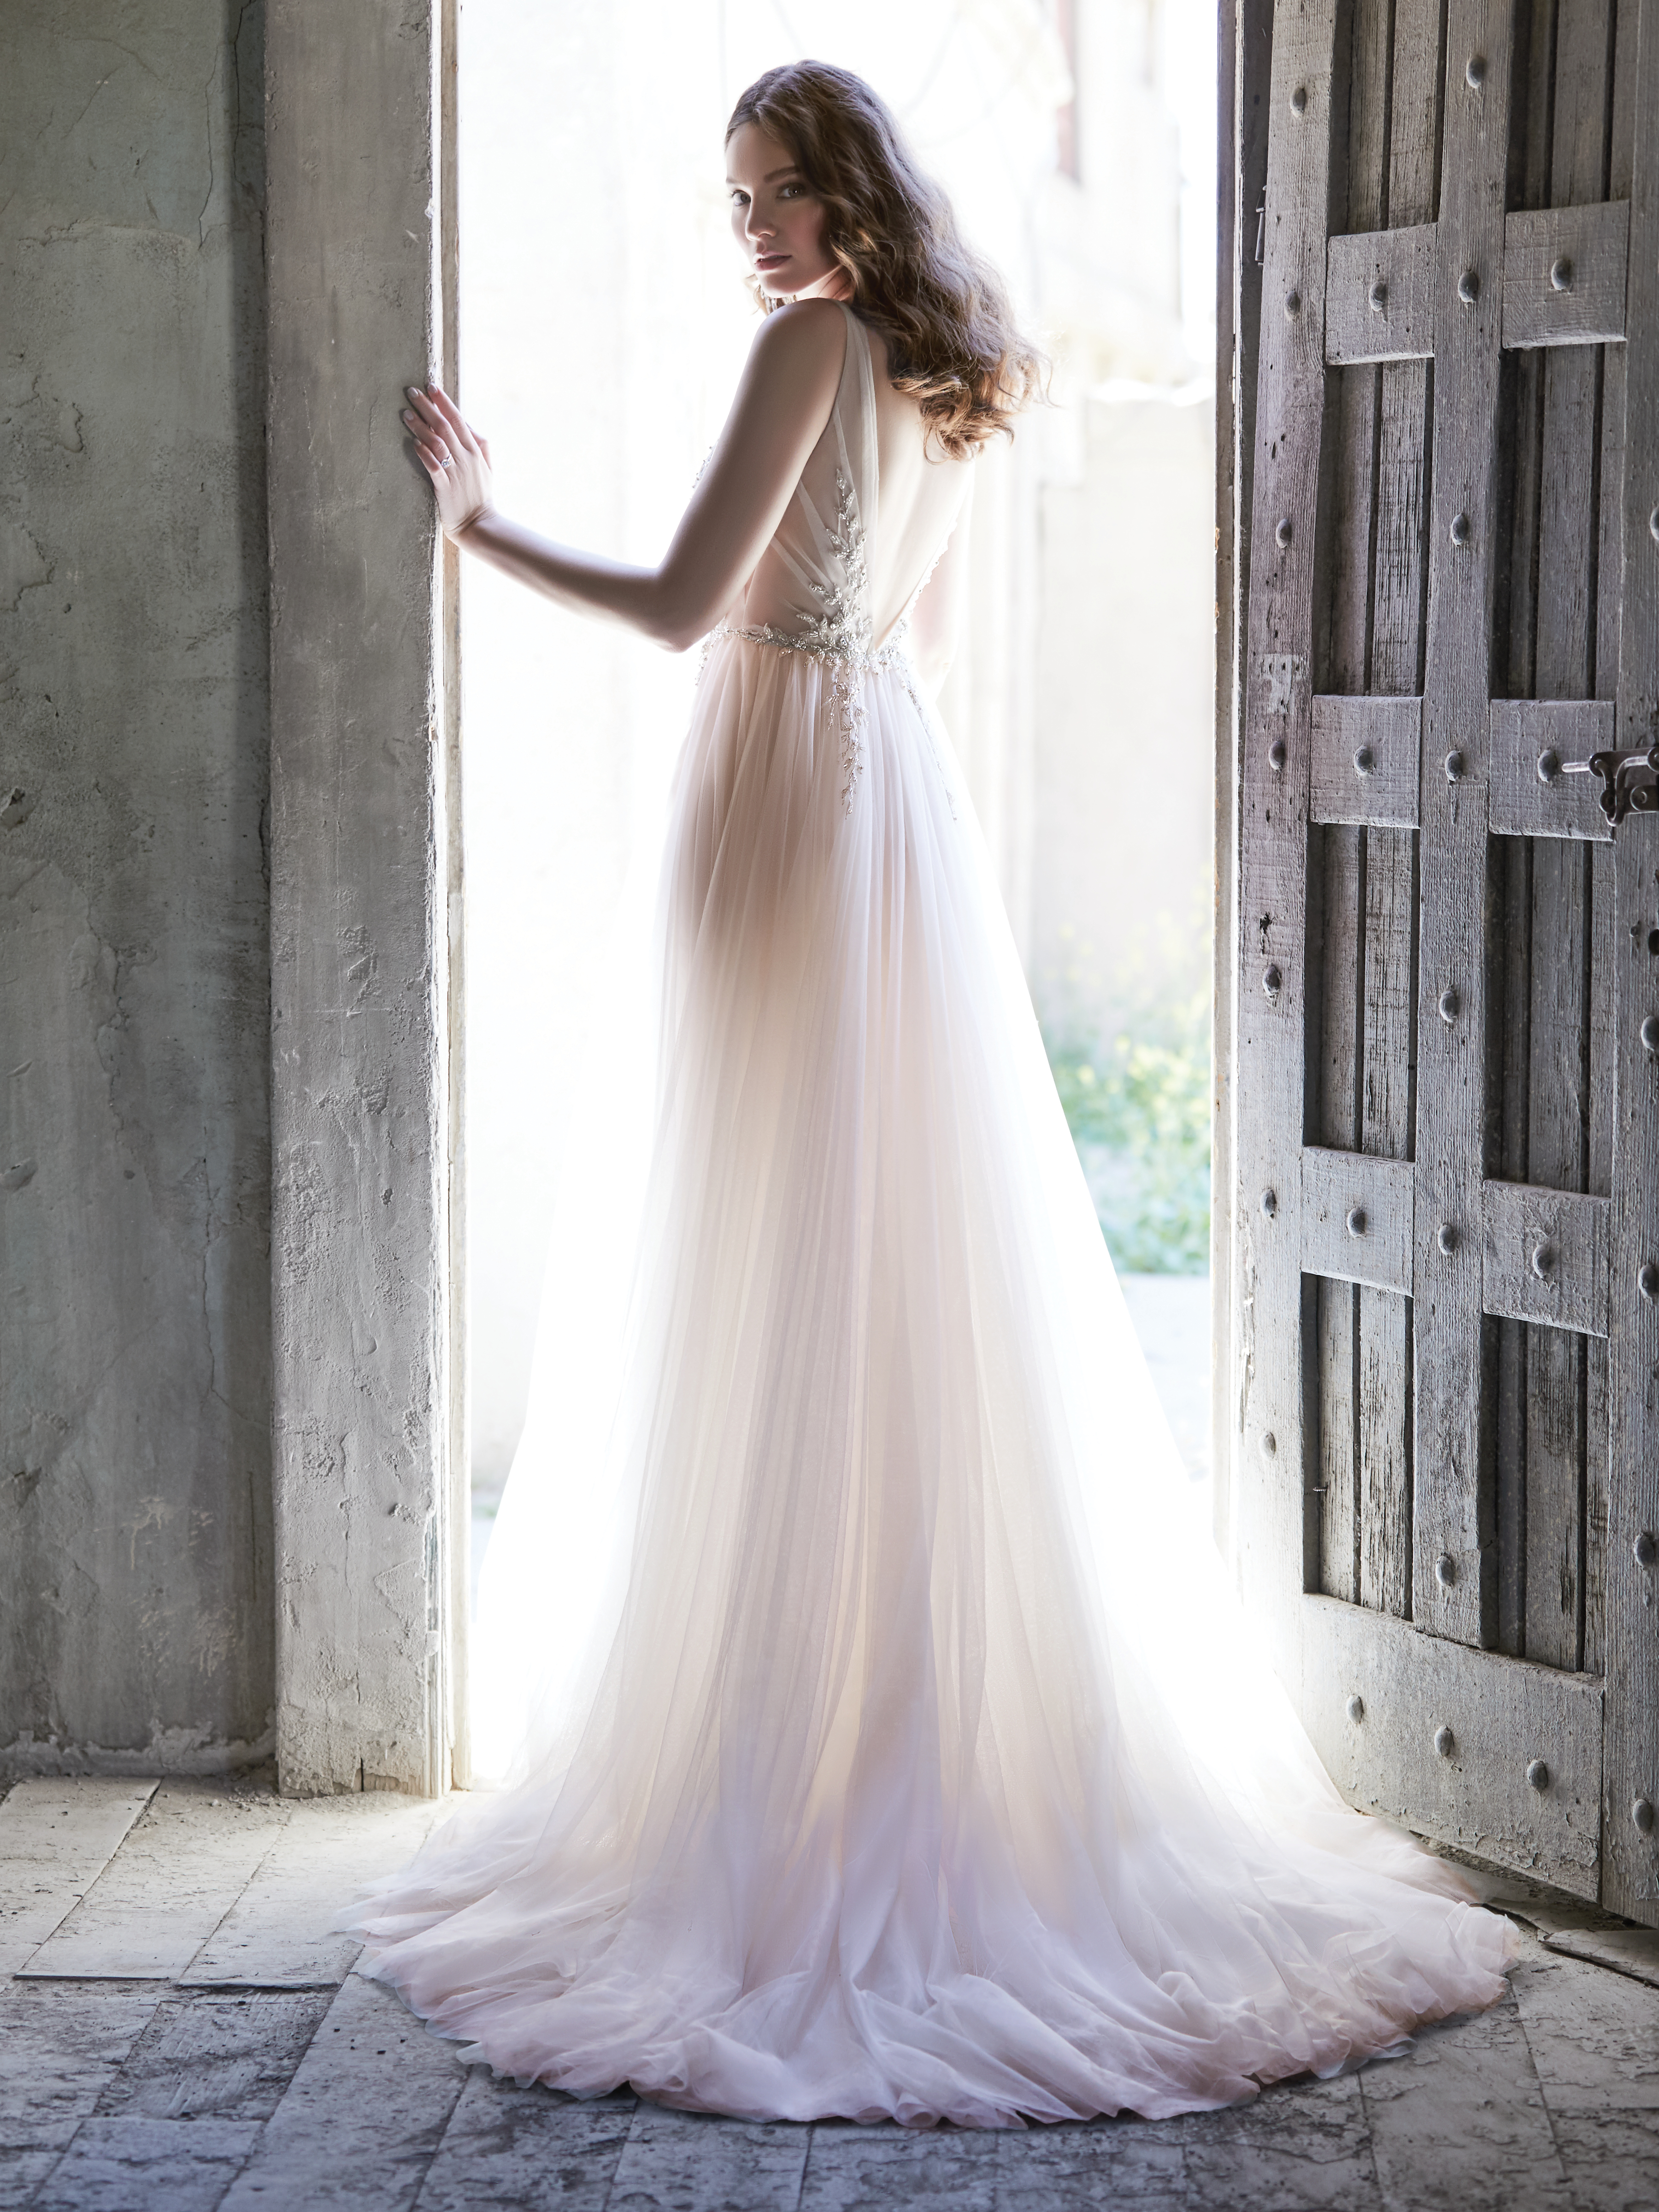 Model from back Wearing Tulle A-line Wedding Dress Called Meletta by Maggie Sottero